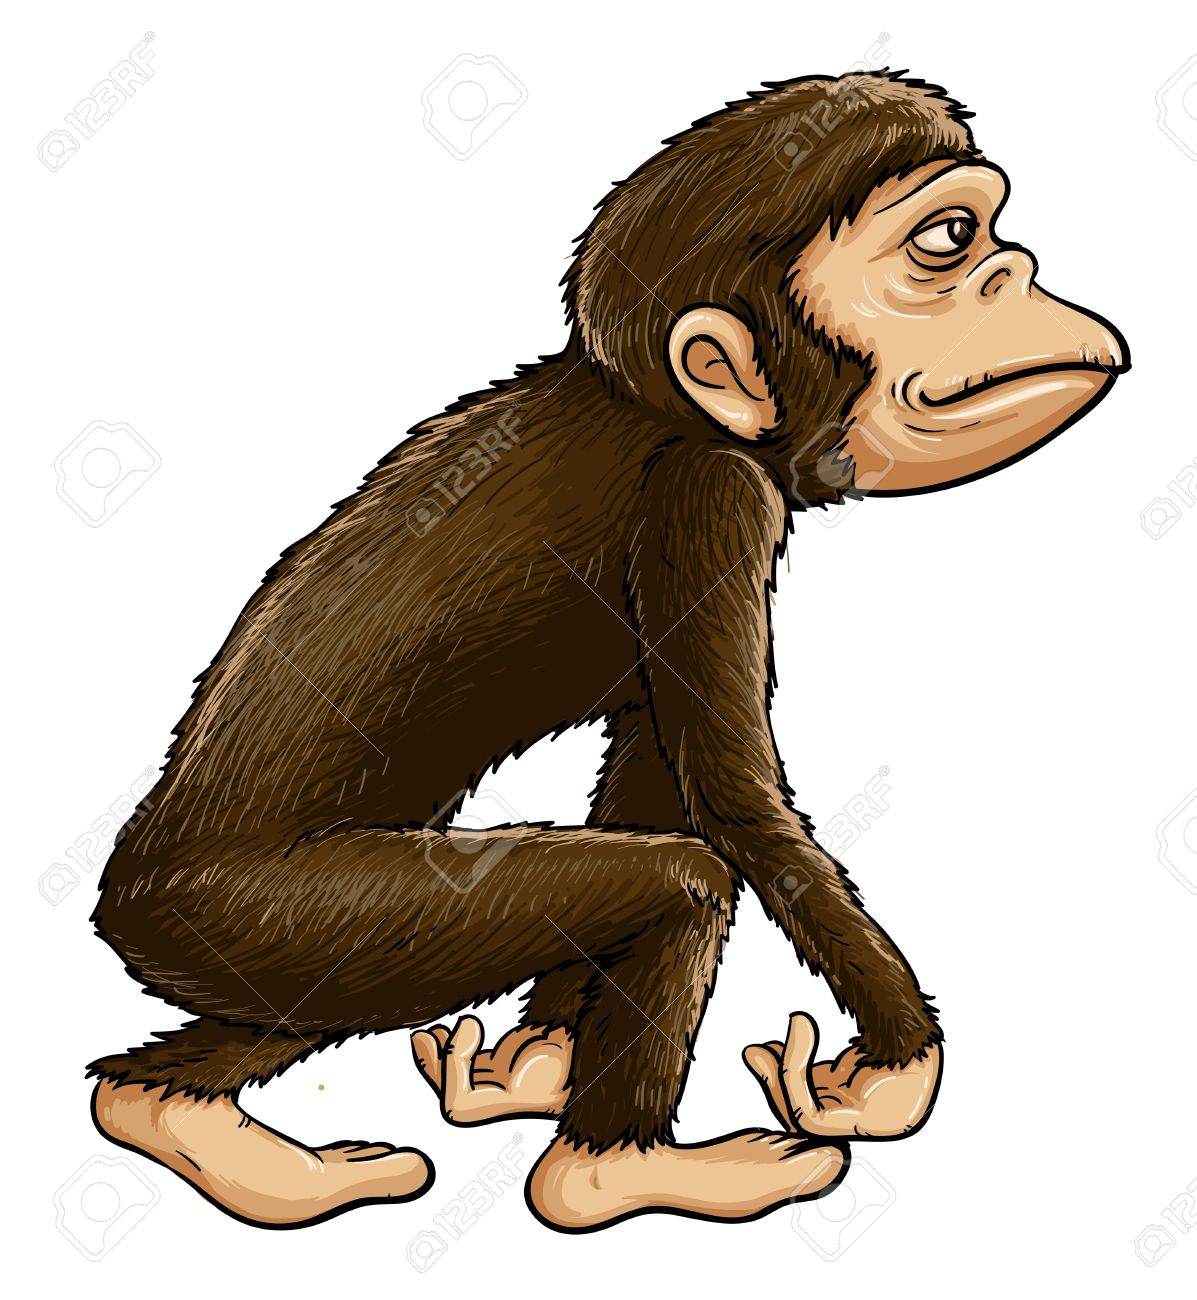 Primate clipart #5, Download drawings